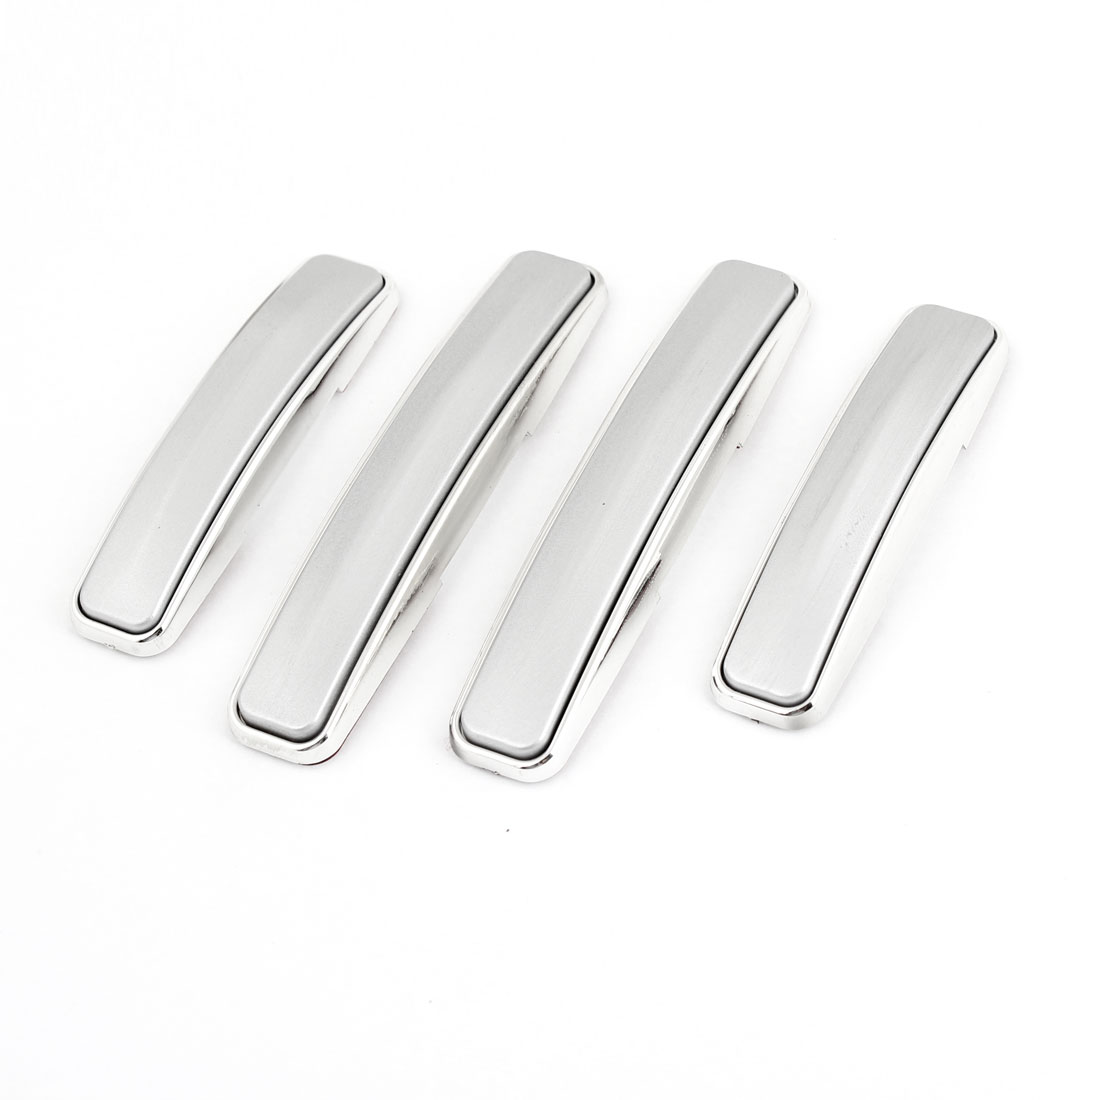 4 Pcs Silver Tone Gray Plastic Side Door Guard Protection Sticker for Auto Car